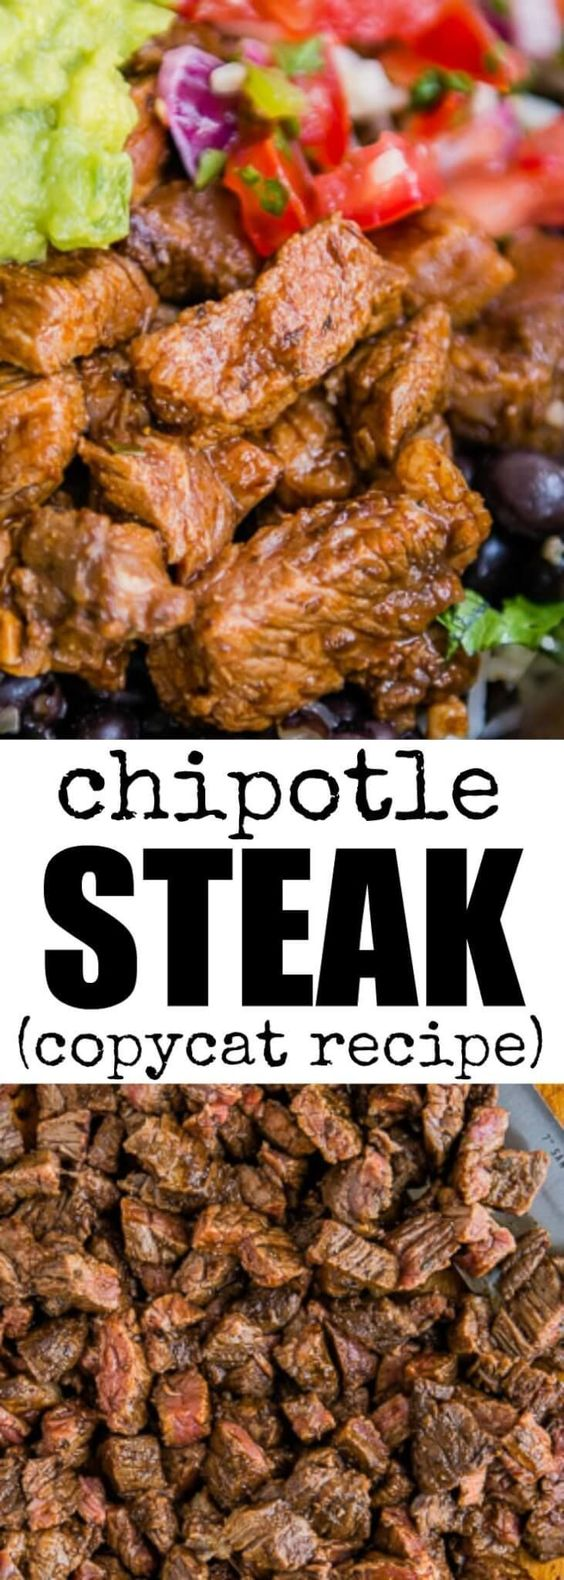 Chipotle Steak Recipe (Copycat)